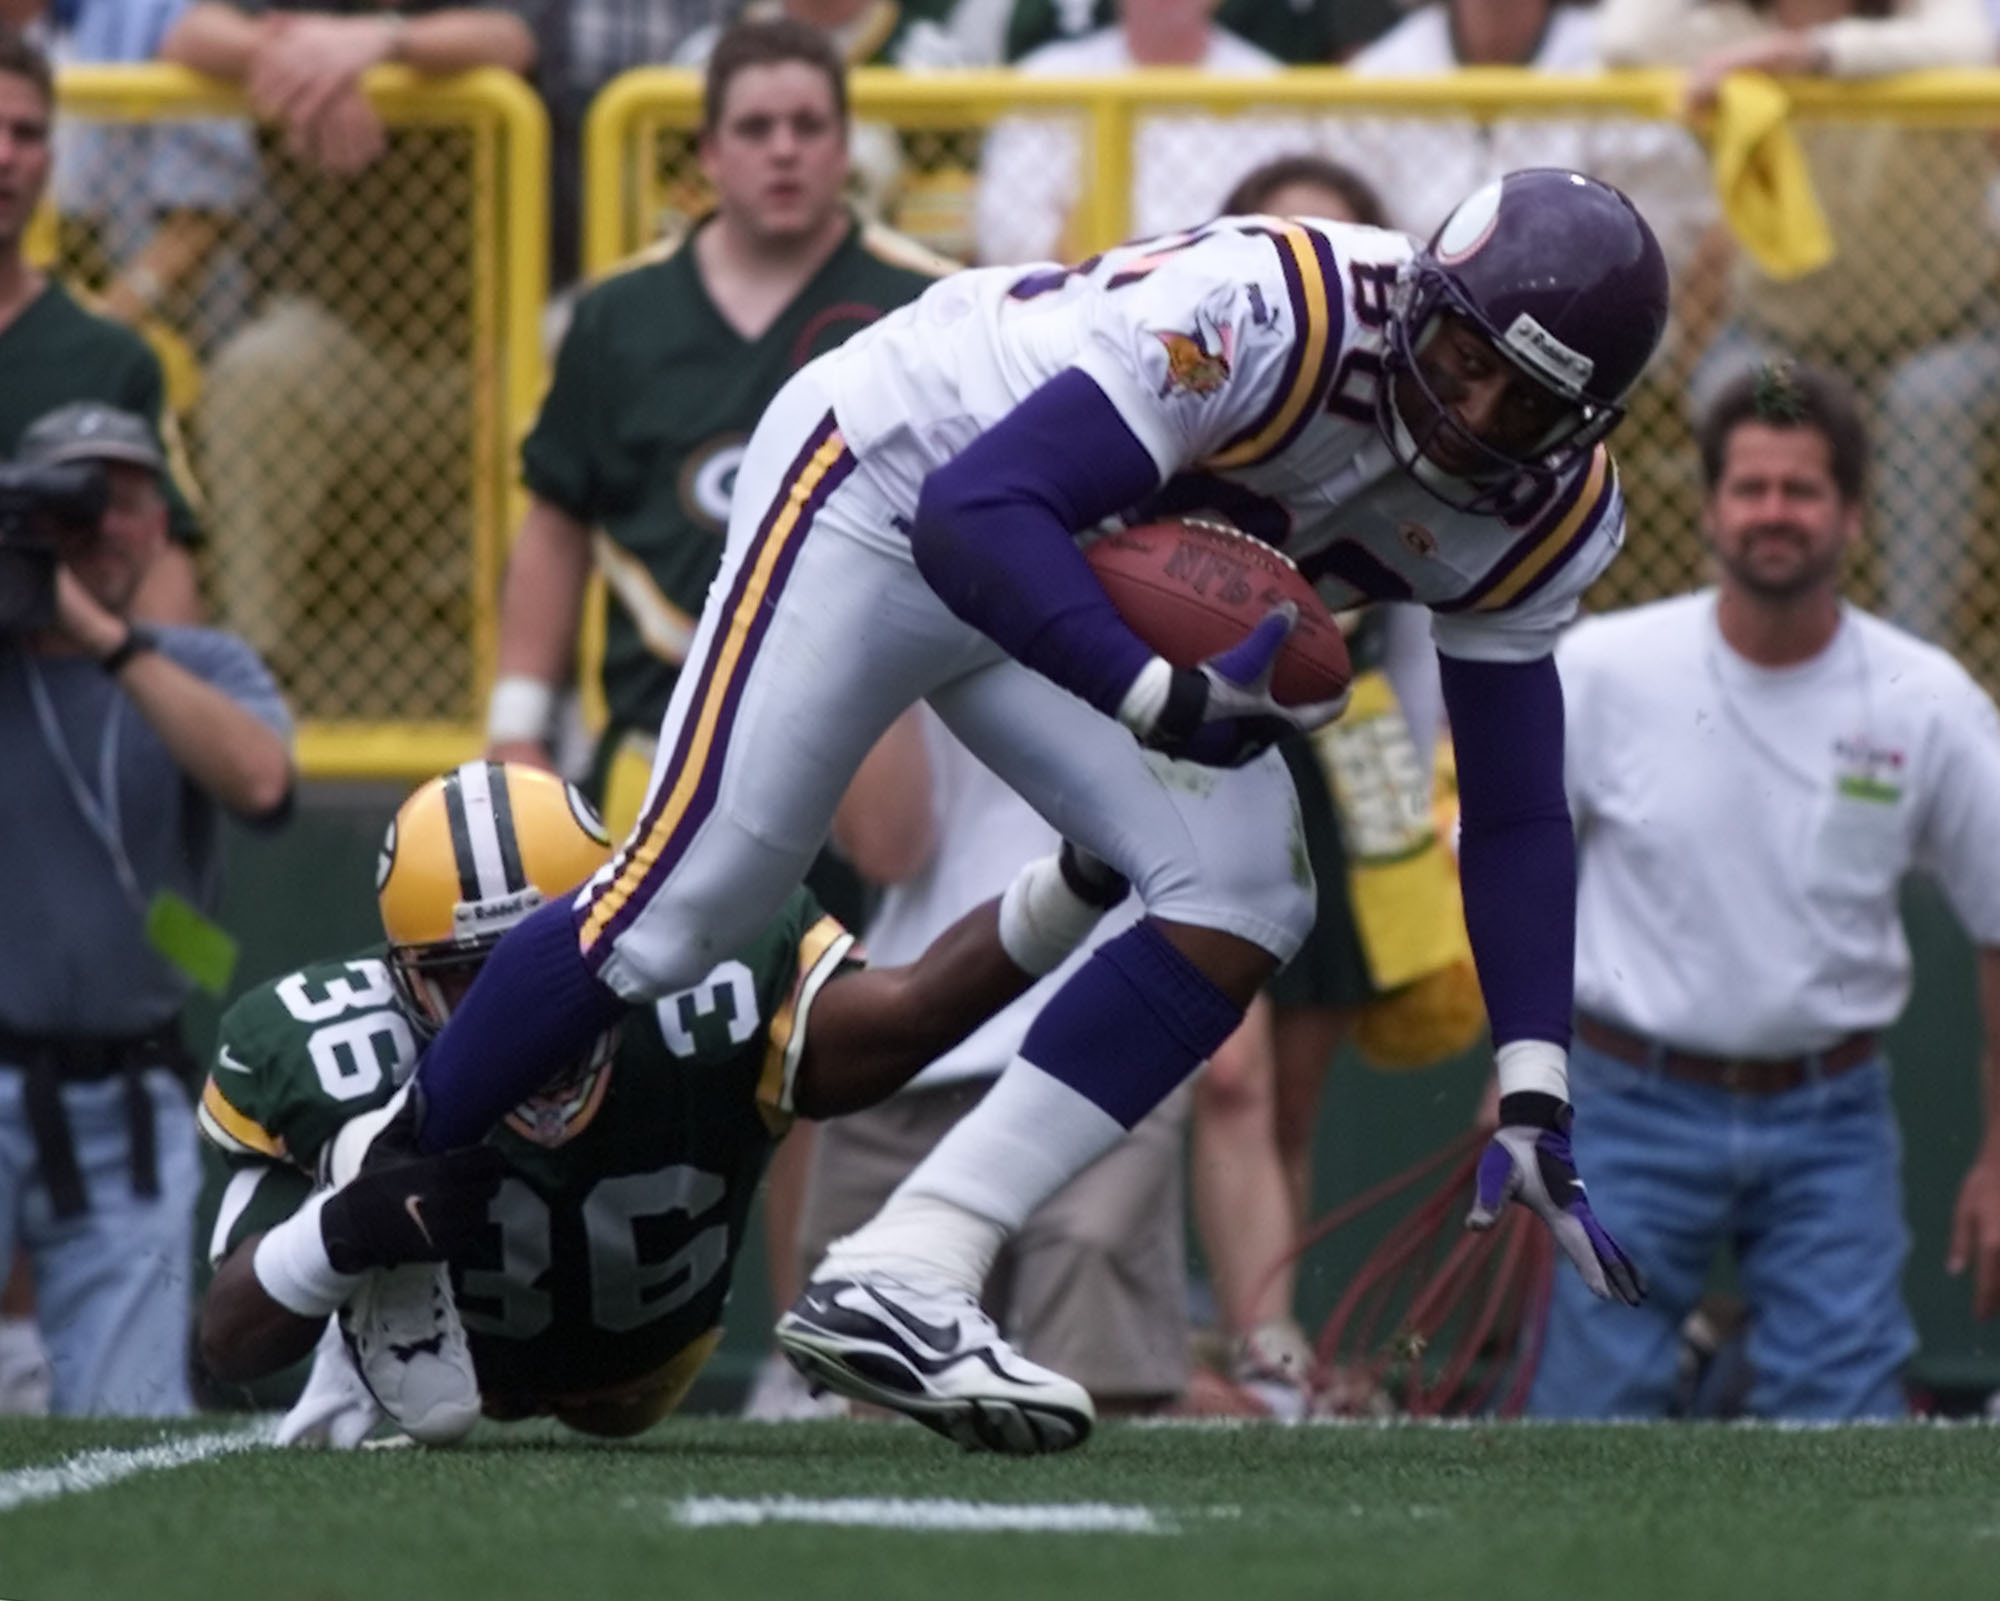 Vikings - Green Bay Packer football September 26,1999. -- Minnesota Vikings wide receiver Chris Carter,80, breaks out of a tackle attempt by Packer defensive safety Leroy Butler, 36, during 1st quarter action at Lambeau Field Sunday September 26,1999.